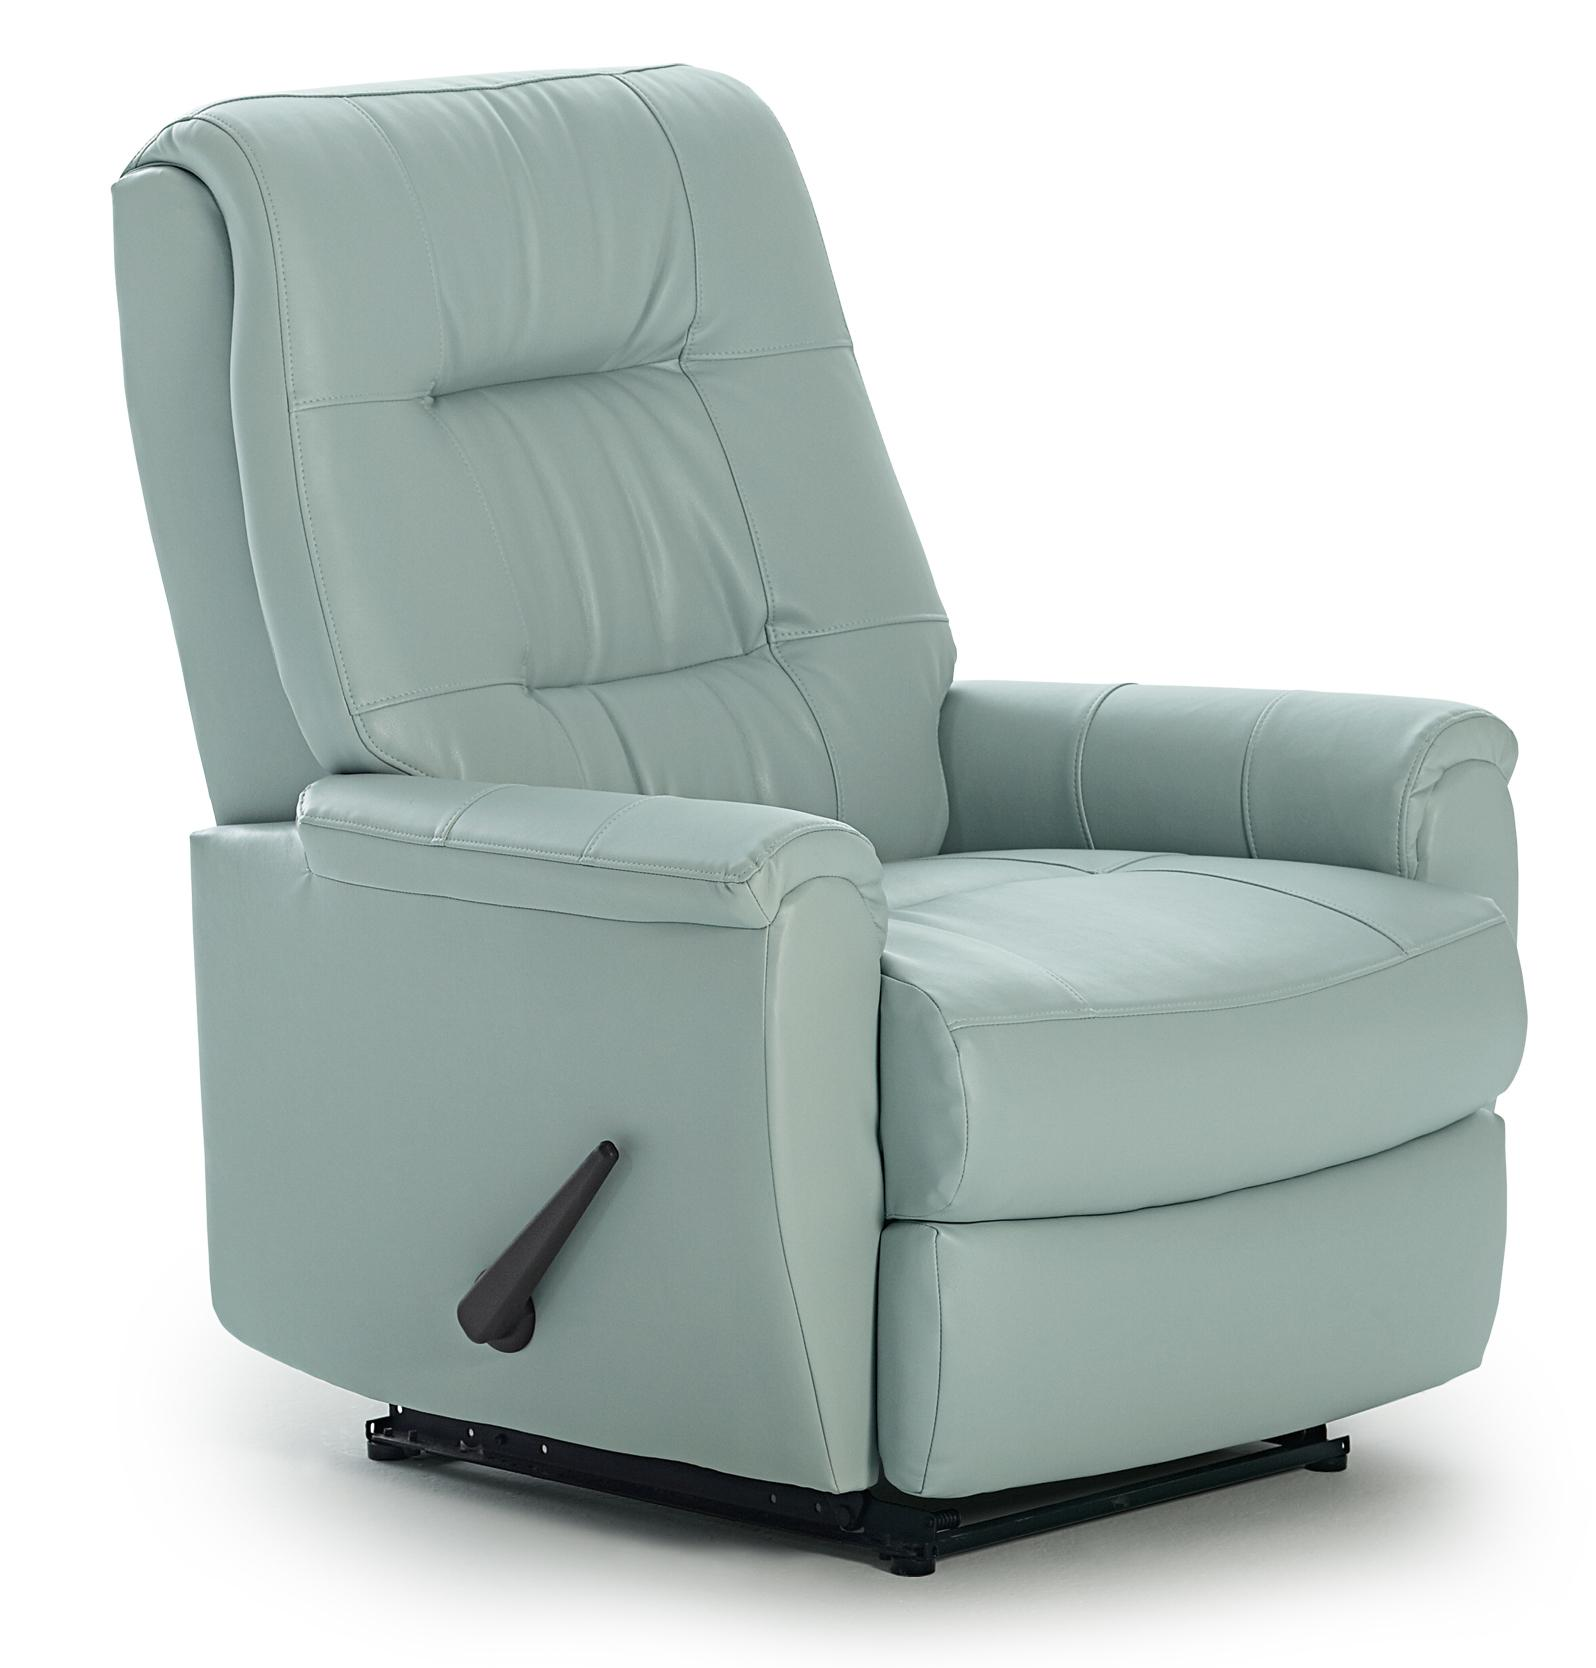 Petite Chairs Best Home Furnishings Petite Recliners 2ap77u Felicia